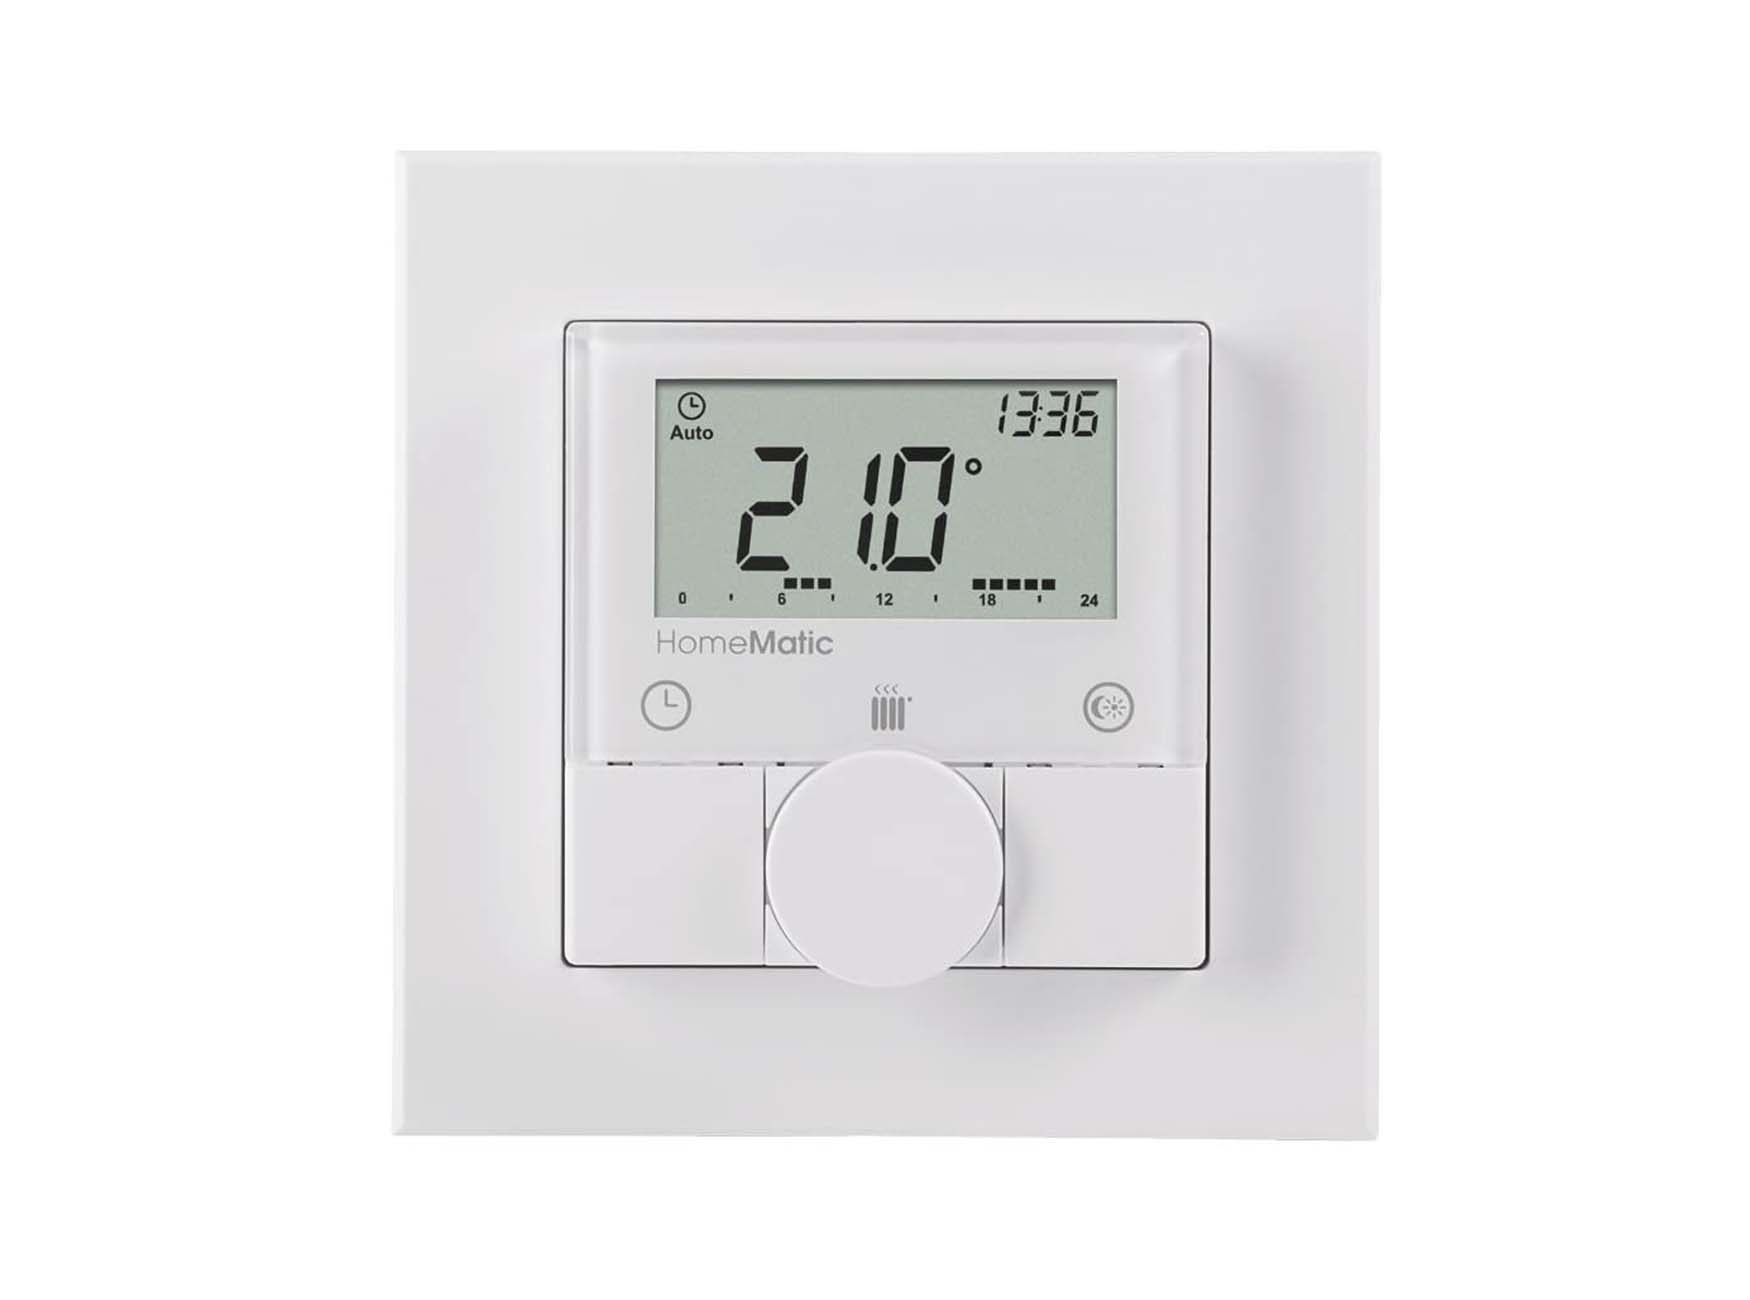 HomeMatic Funk Wandthermostat